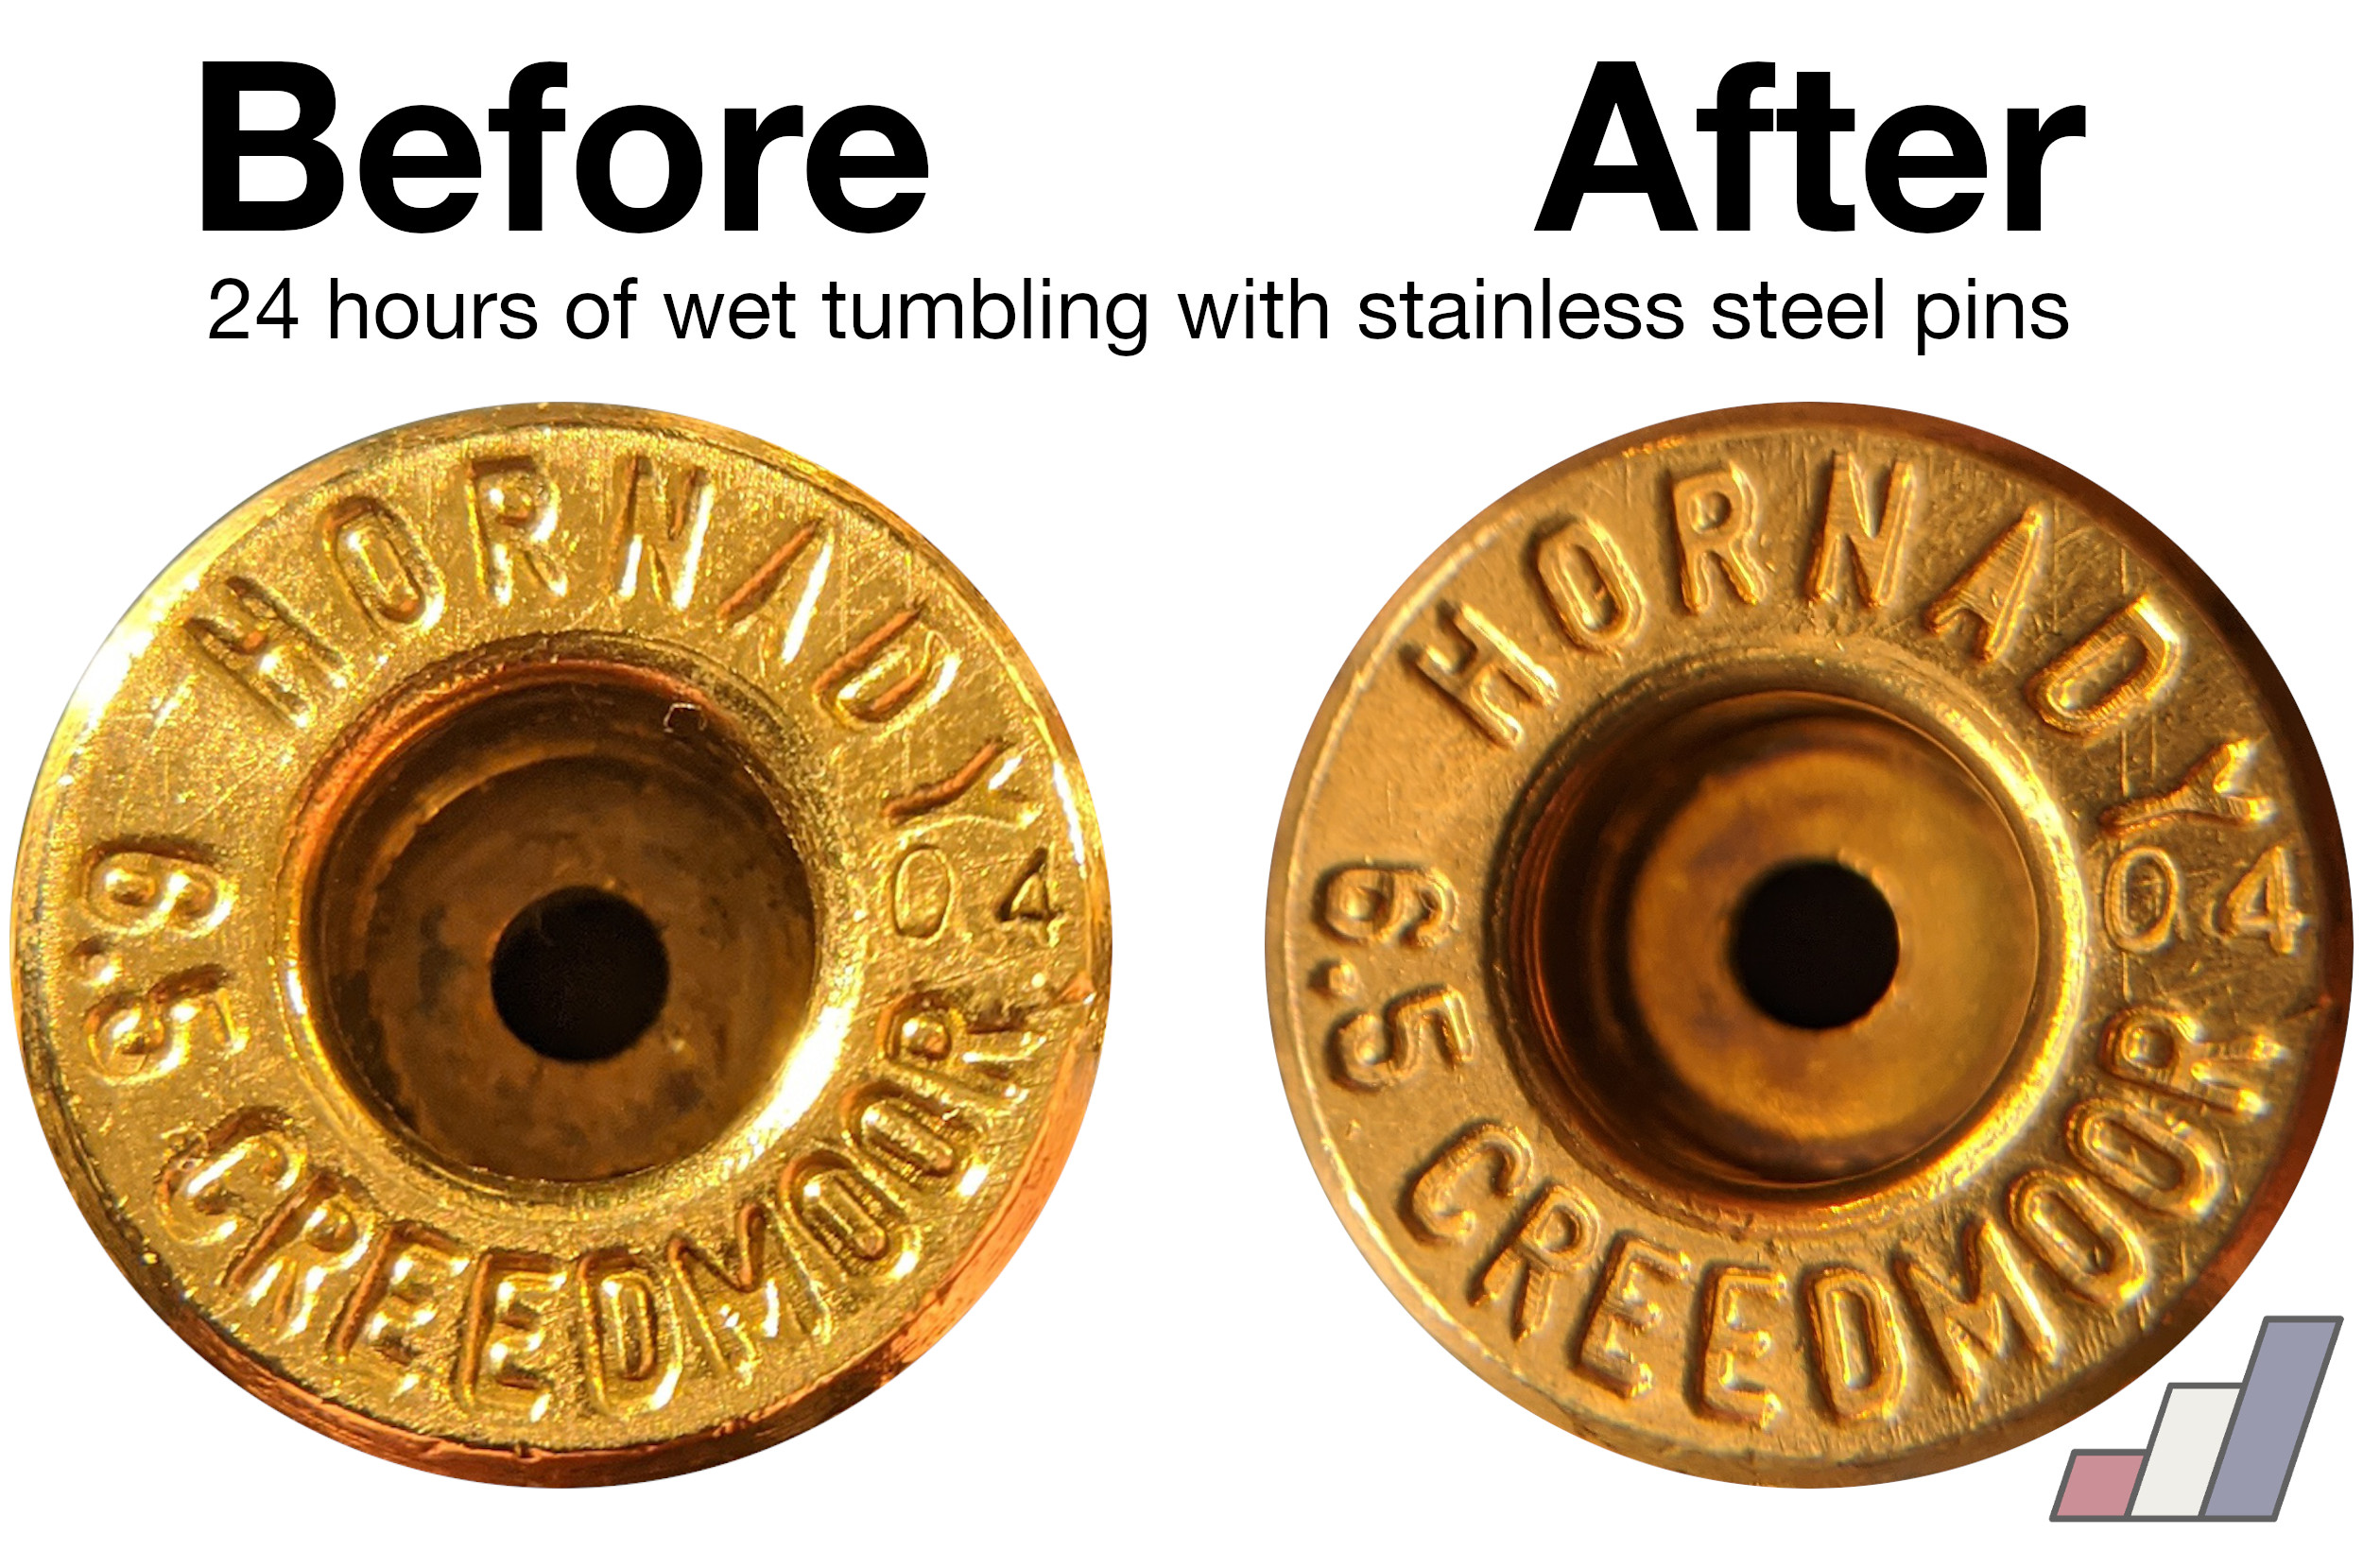 Hornady 6.5mm Creedmoor case microstamped with `04`, before and after 24 hours of wet tumbling with stainless steel media.